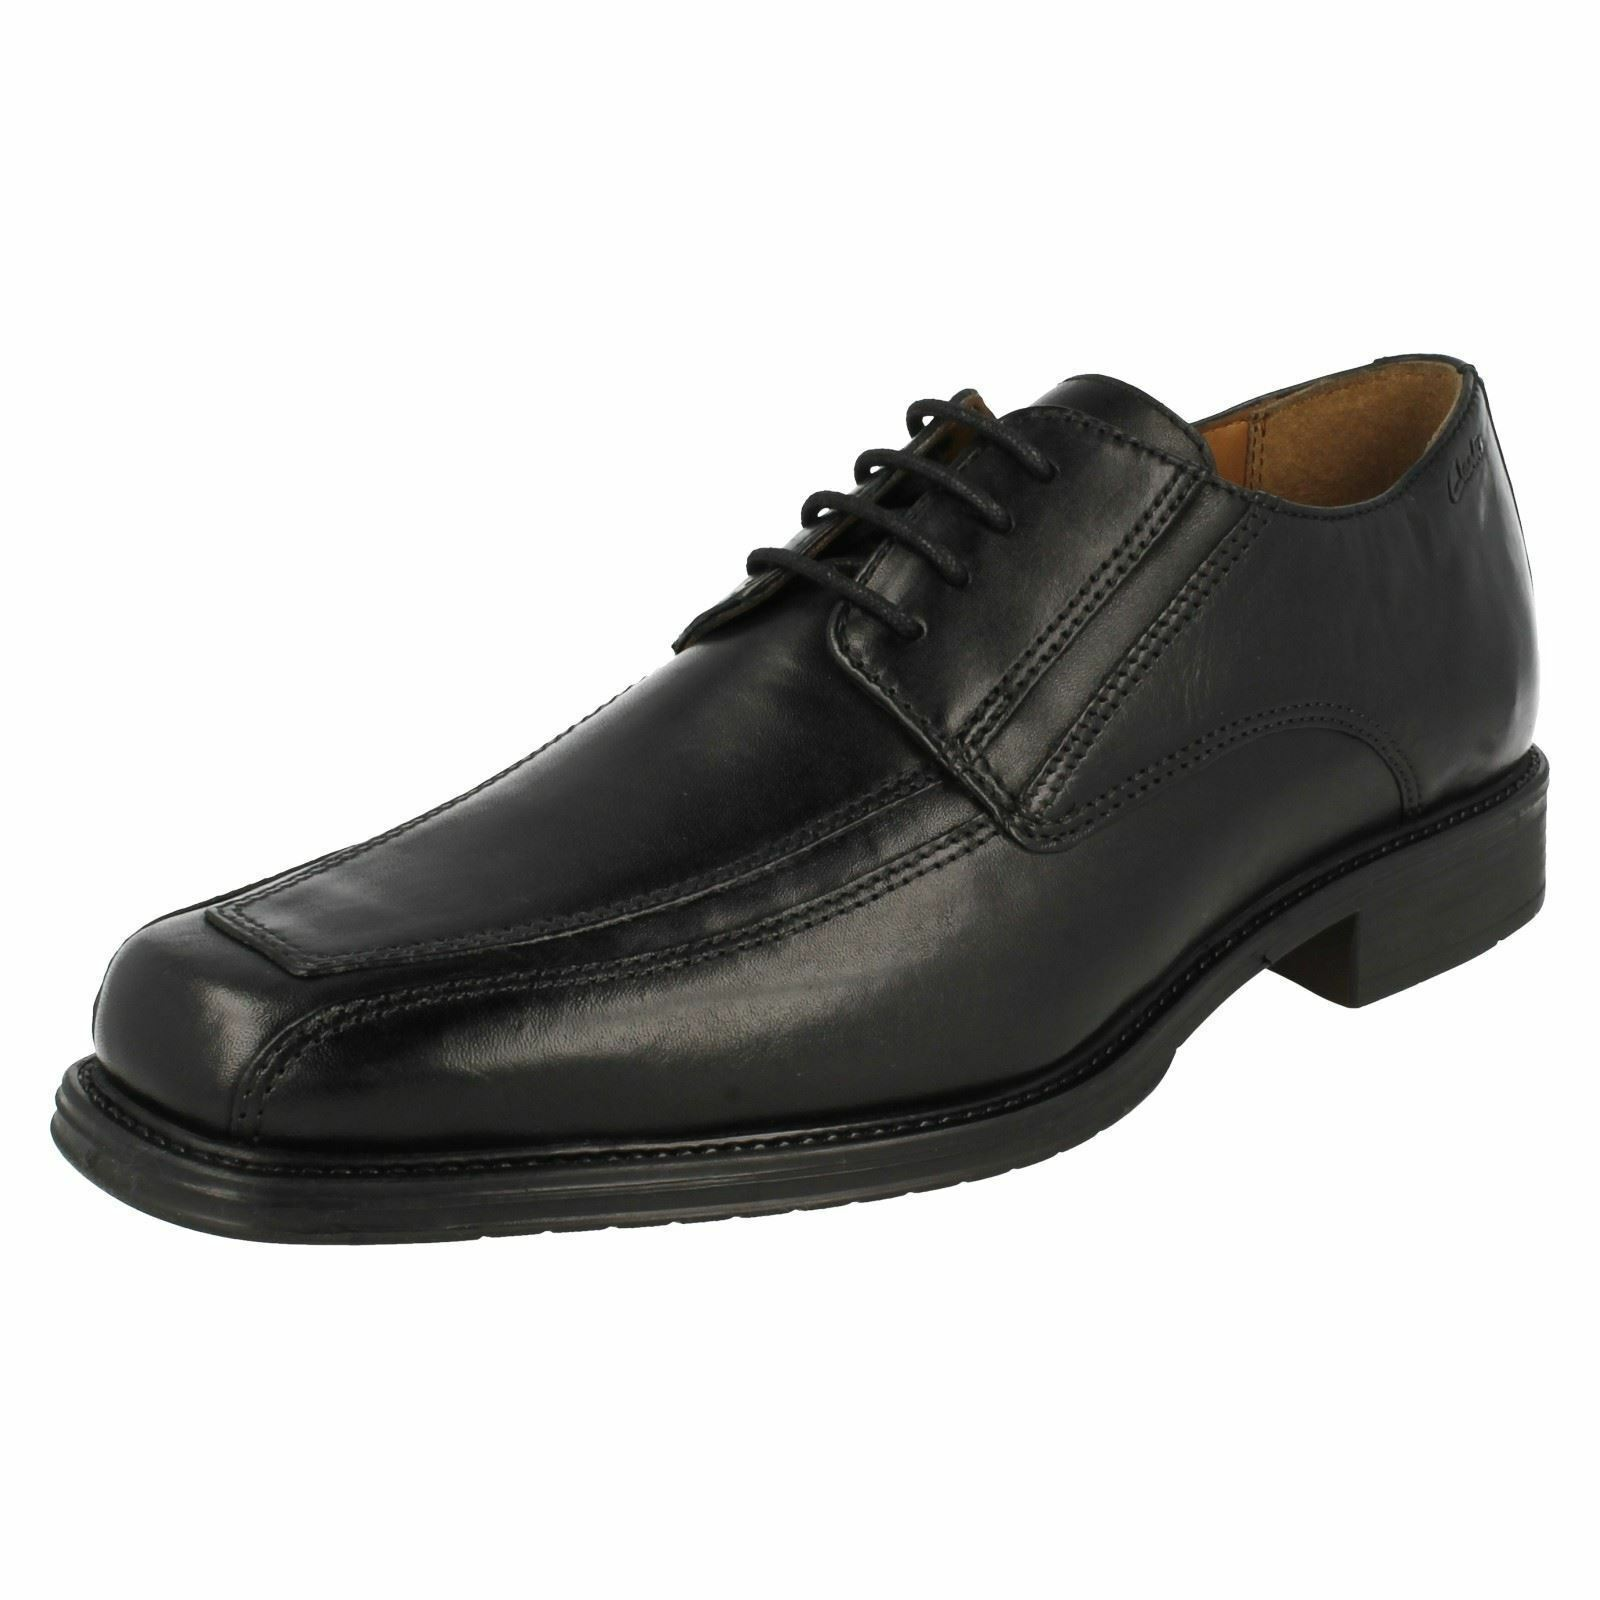 SALE Mens DRIGGS WALK black leather lace up shoes by Clarks Retail price £44.99